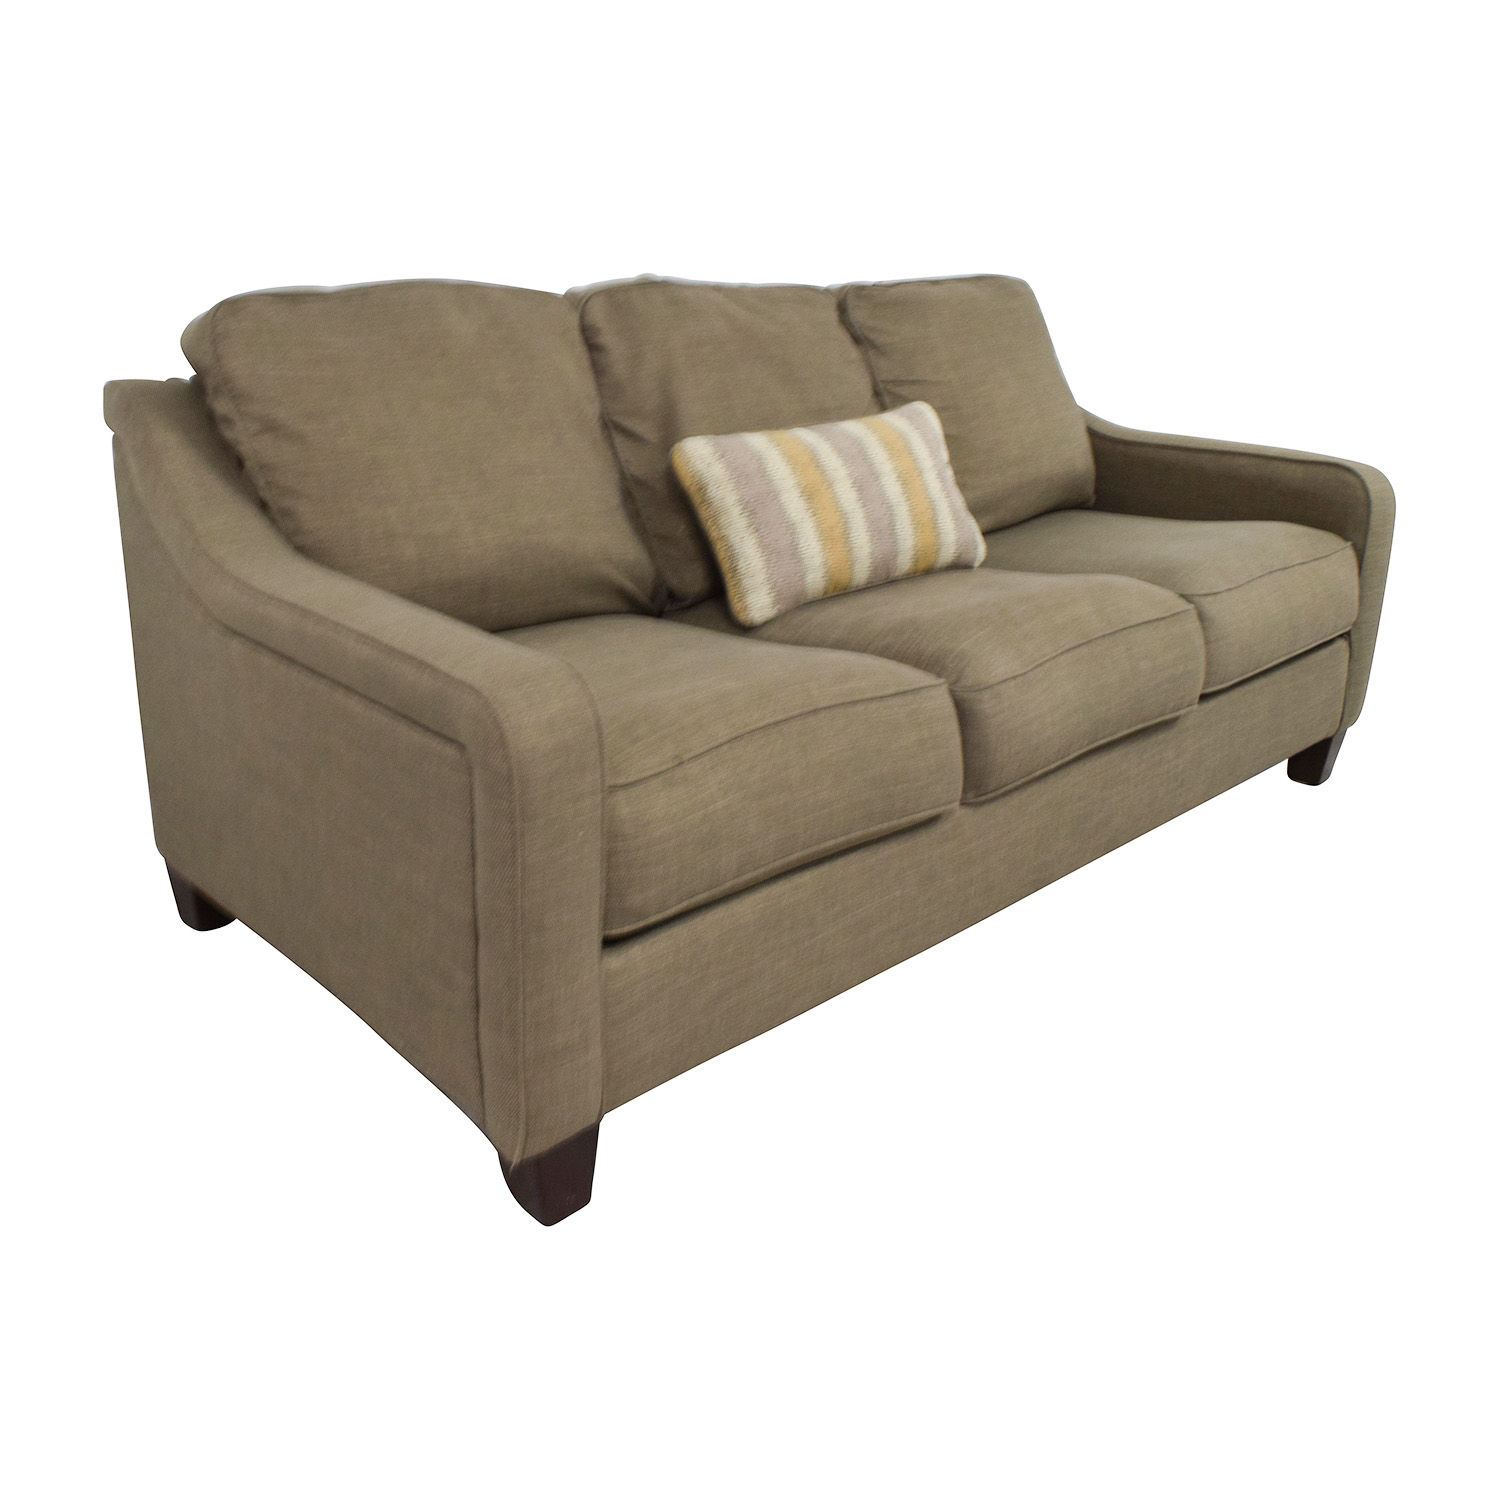 Throw Pillows Sofa : 55% OFF - Jennifer Furniture Jennifer Furniture Brown Three Seater Sofa with Throw Pillow / Sofas